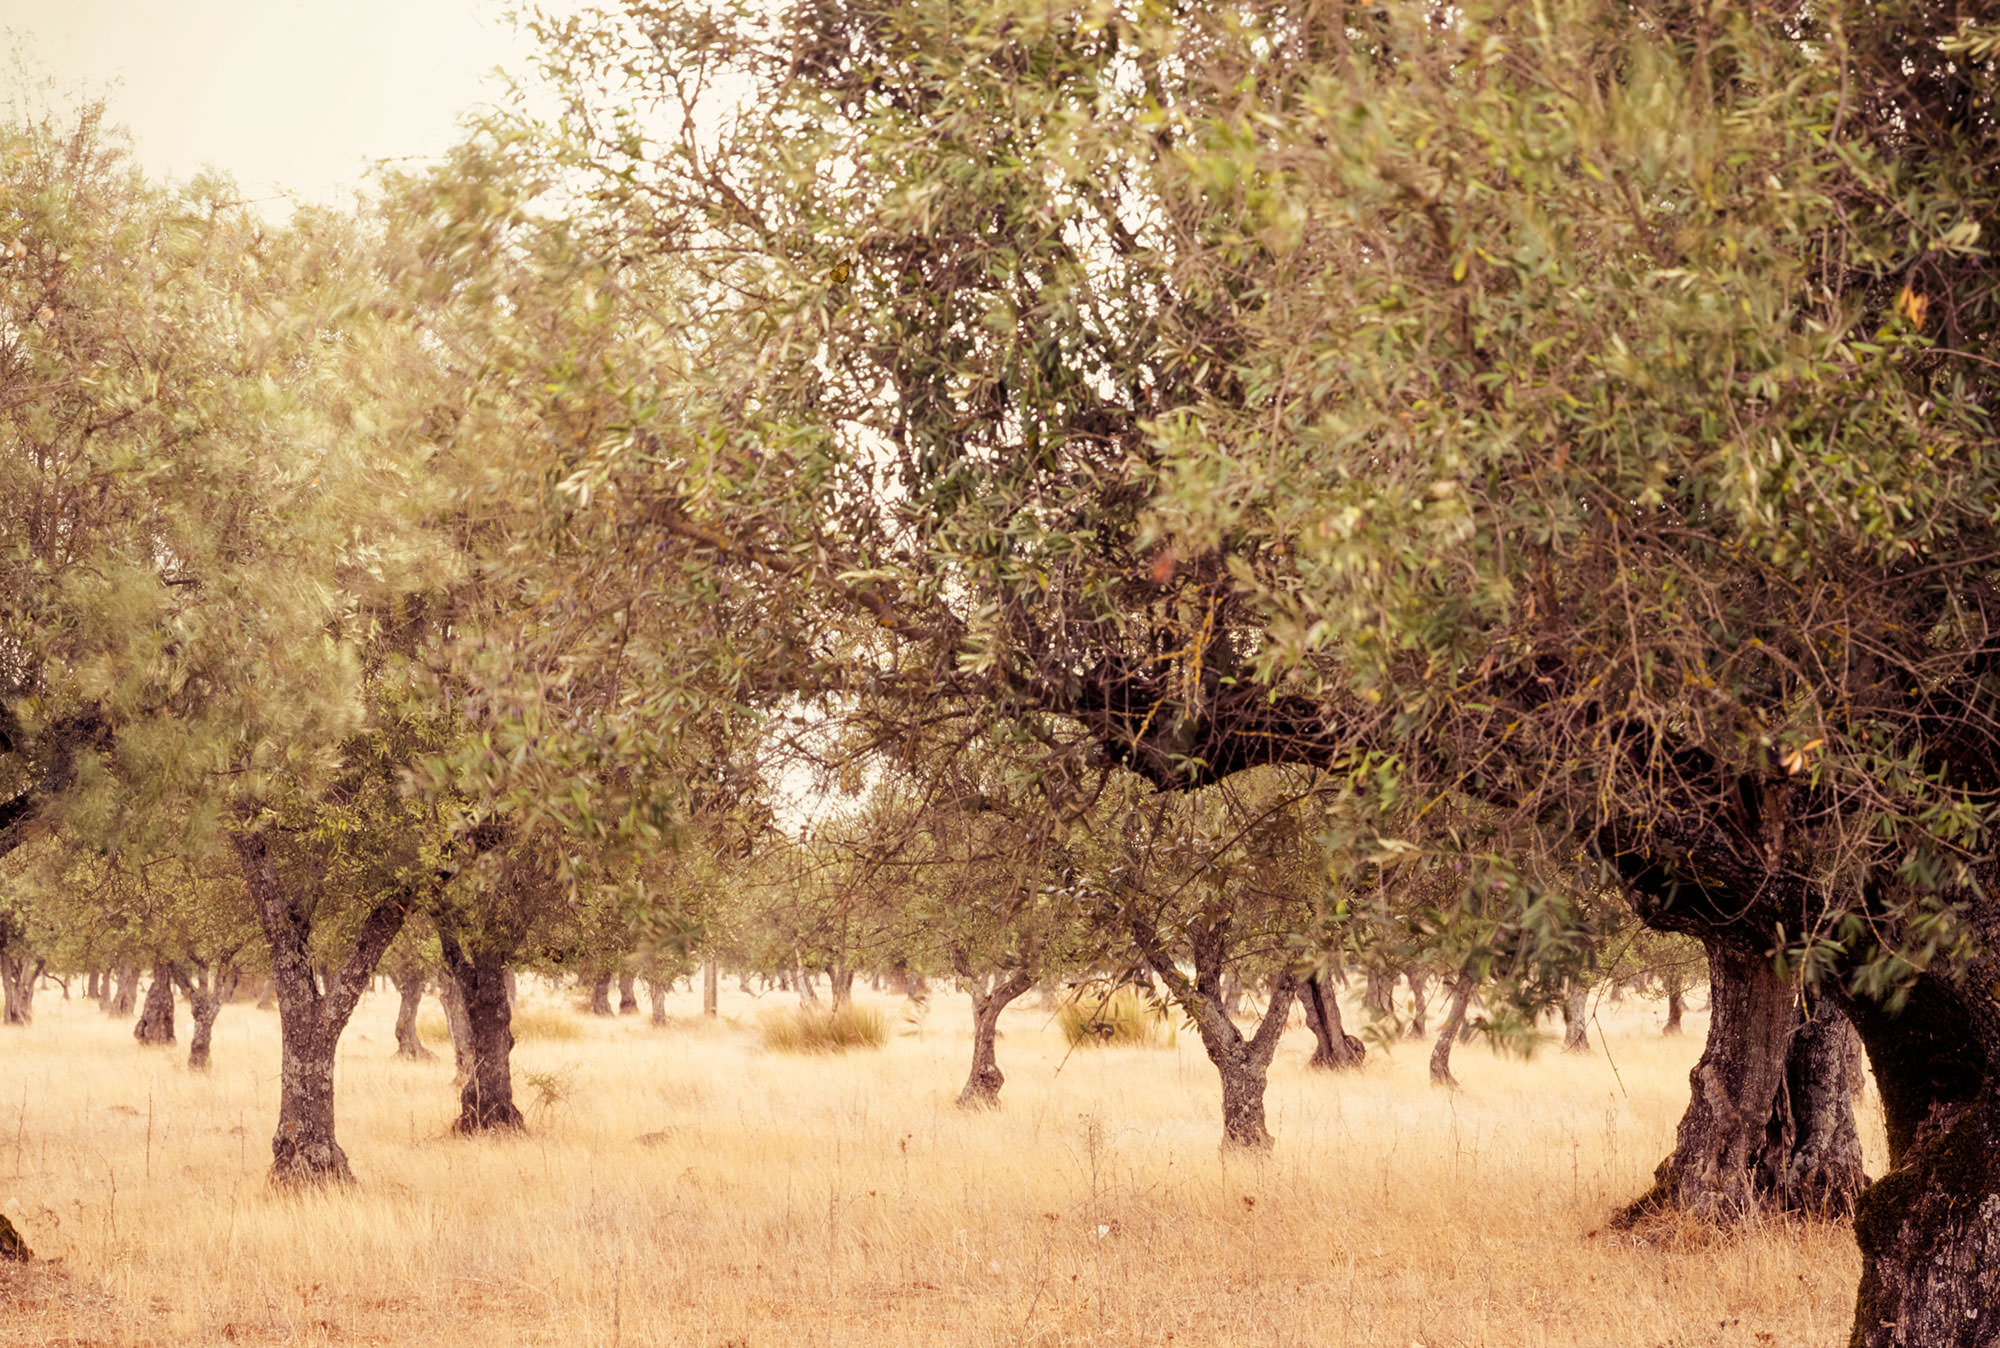 Olive groves in Portugal, near the border of Spain.